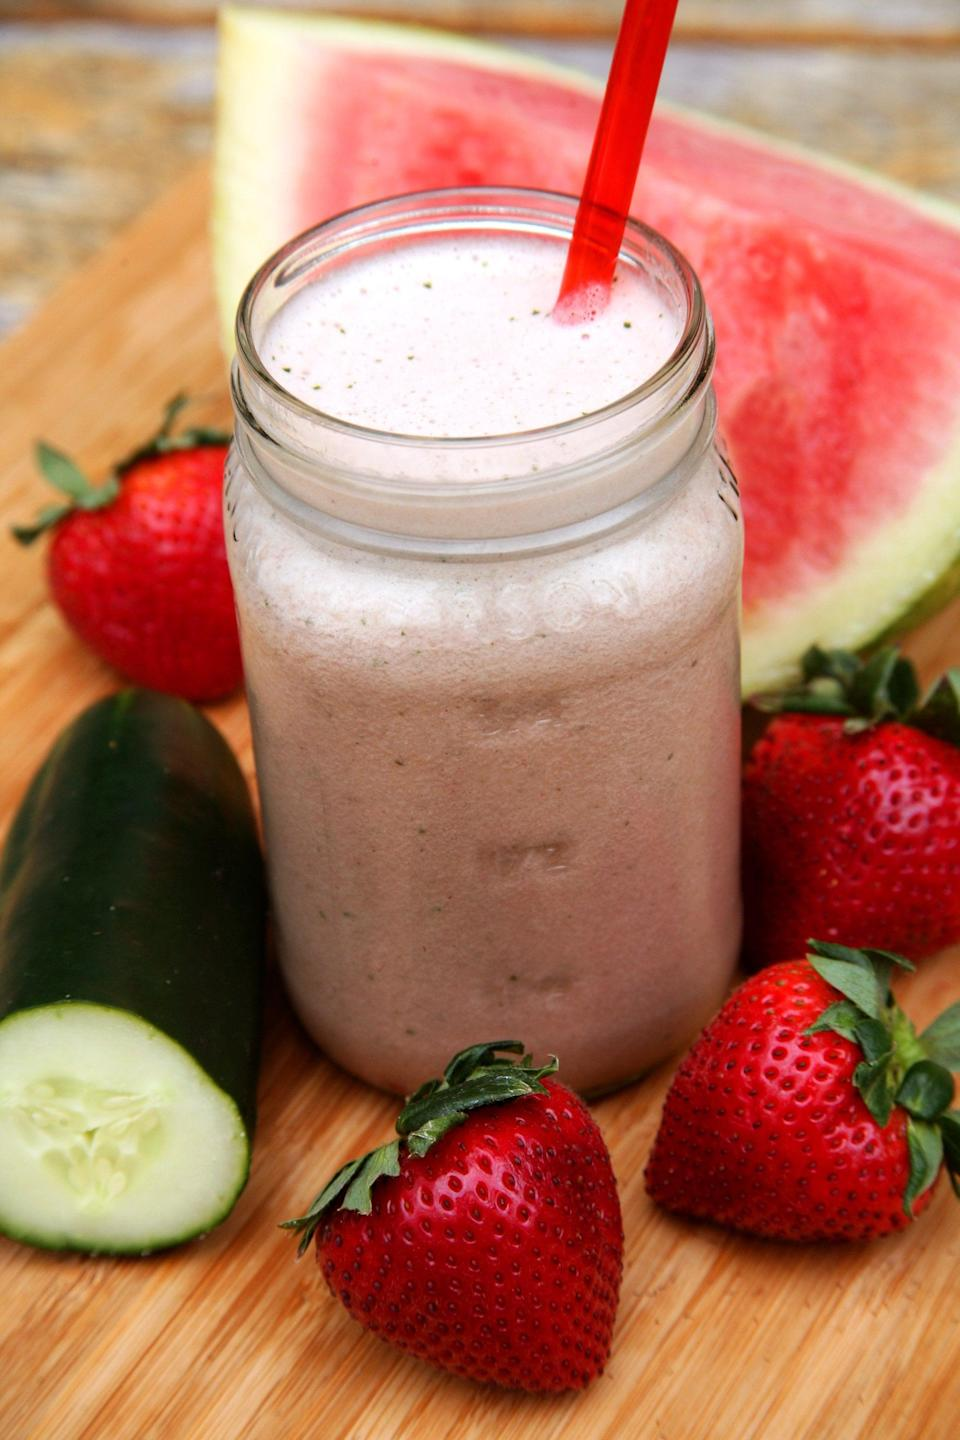 "<p>As a water sign who has a thirst for breaking the rules and being rebellious, those with the sign of Aquarius will love this hydrating watermelon smoothie with an unusual smoothie ingredient: cucumber. </p> <p><strong>Get the recipe</strong>: <a href=""https://www.popsugar.com/fitness/Hydrating-Recovery-Smoothie-37382492"" class=""link rapid-noclick-resp"" rel=""nofollow noopener"" target=""_blank"" data-ylk=""slk:strawberry-watermelon smoothie"">strawberry-watermelon smoothie</a></p>"